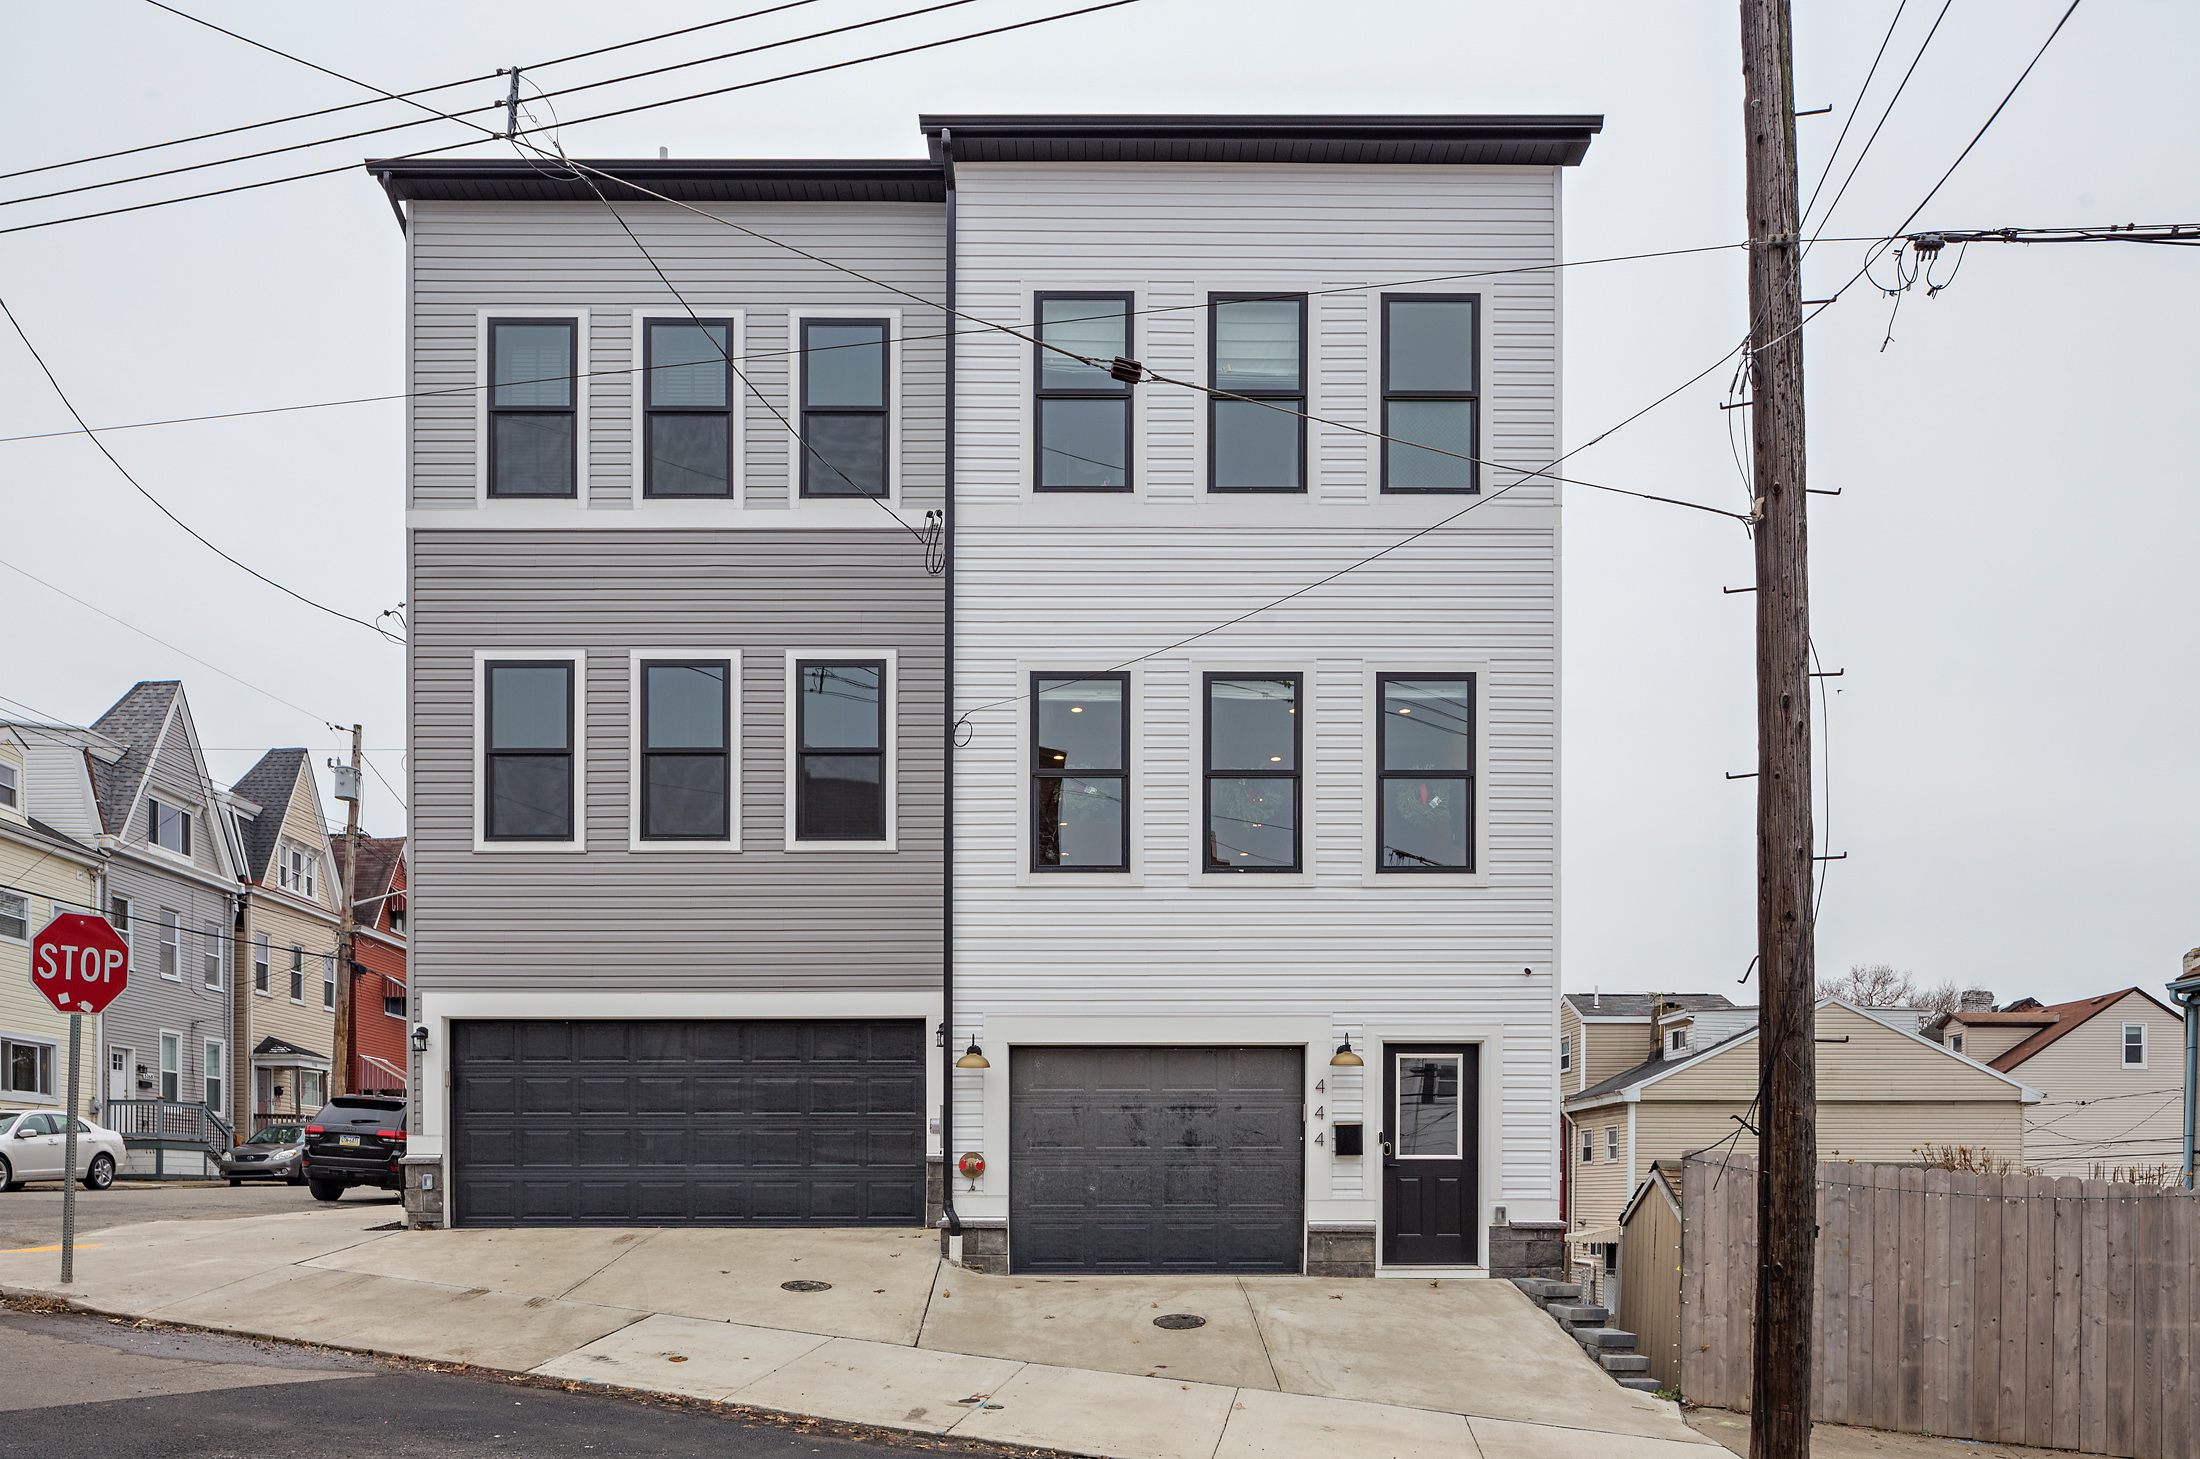 A Perfect Pair - 4 Story Townhomes - Over 2,500 sqft. 3+ bedrooms, 3+ bathrooms, 1-2 car garages